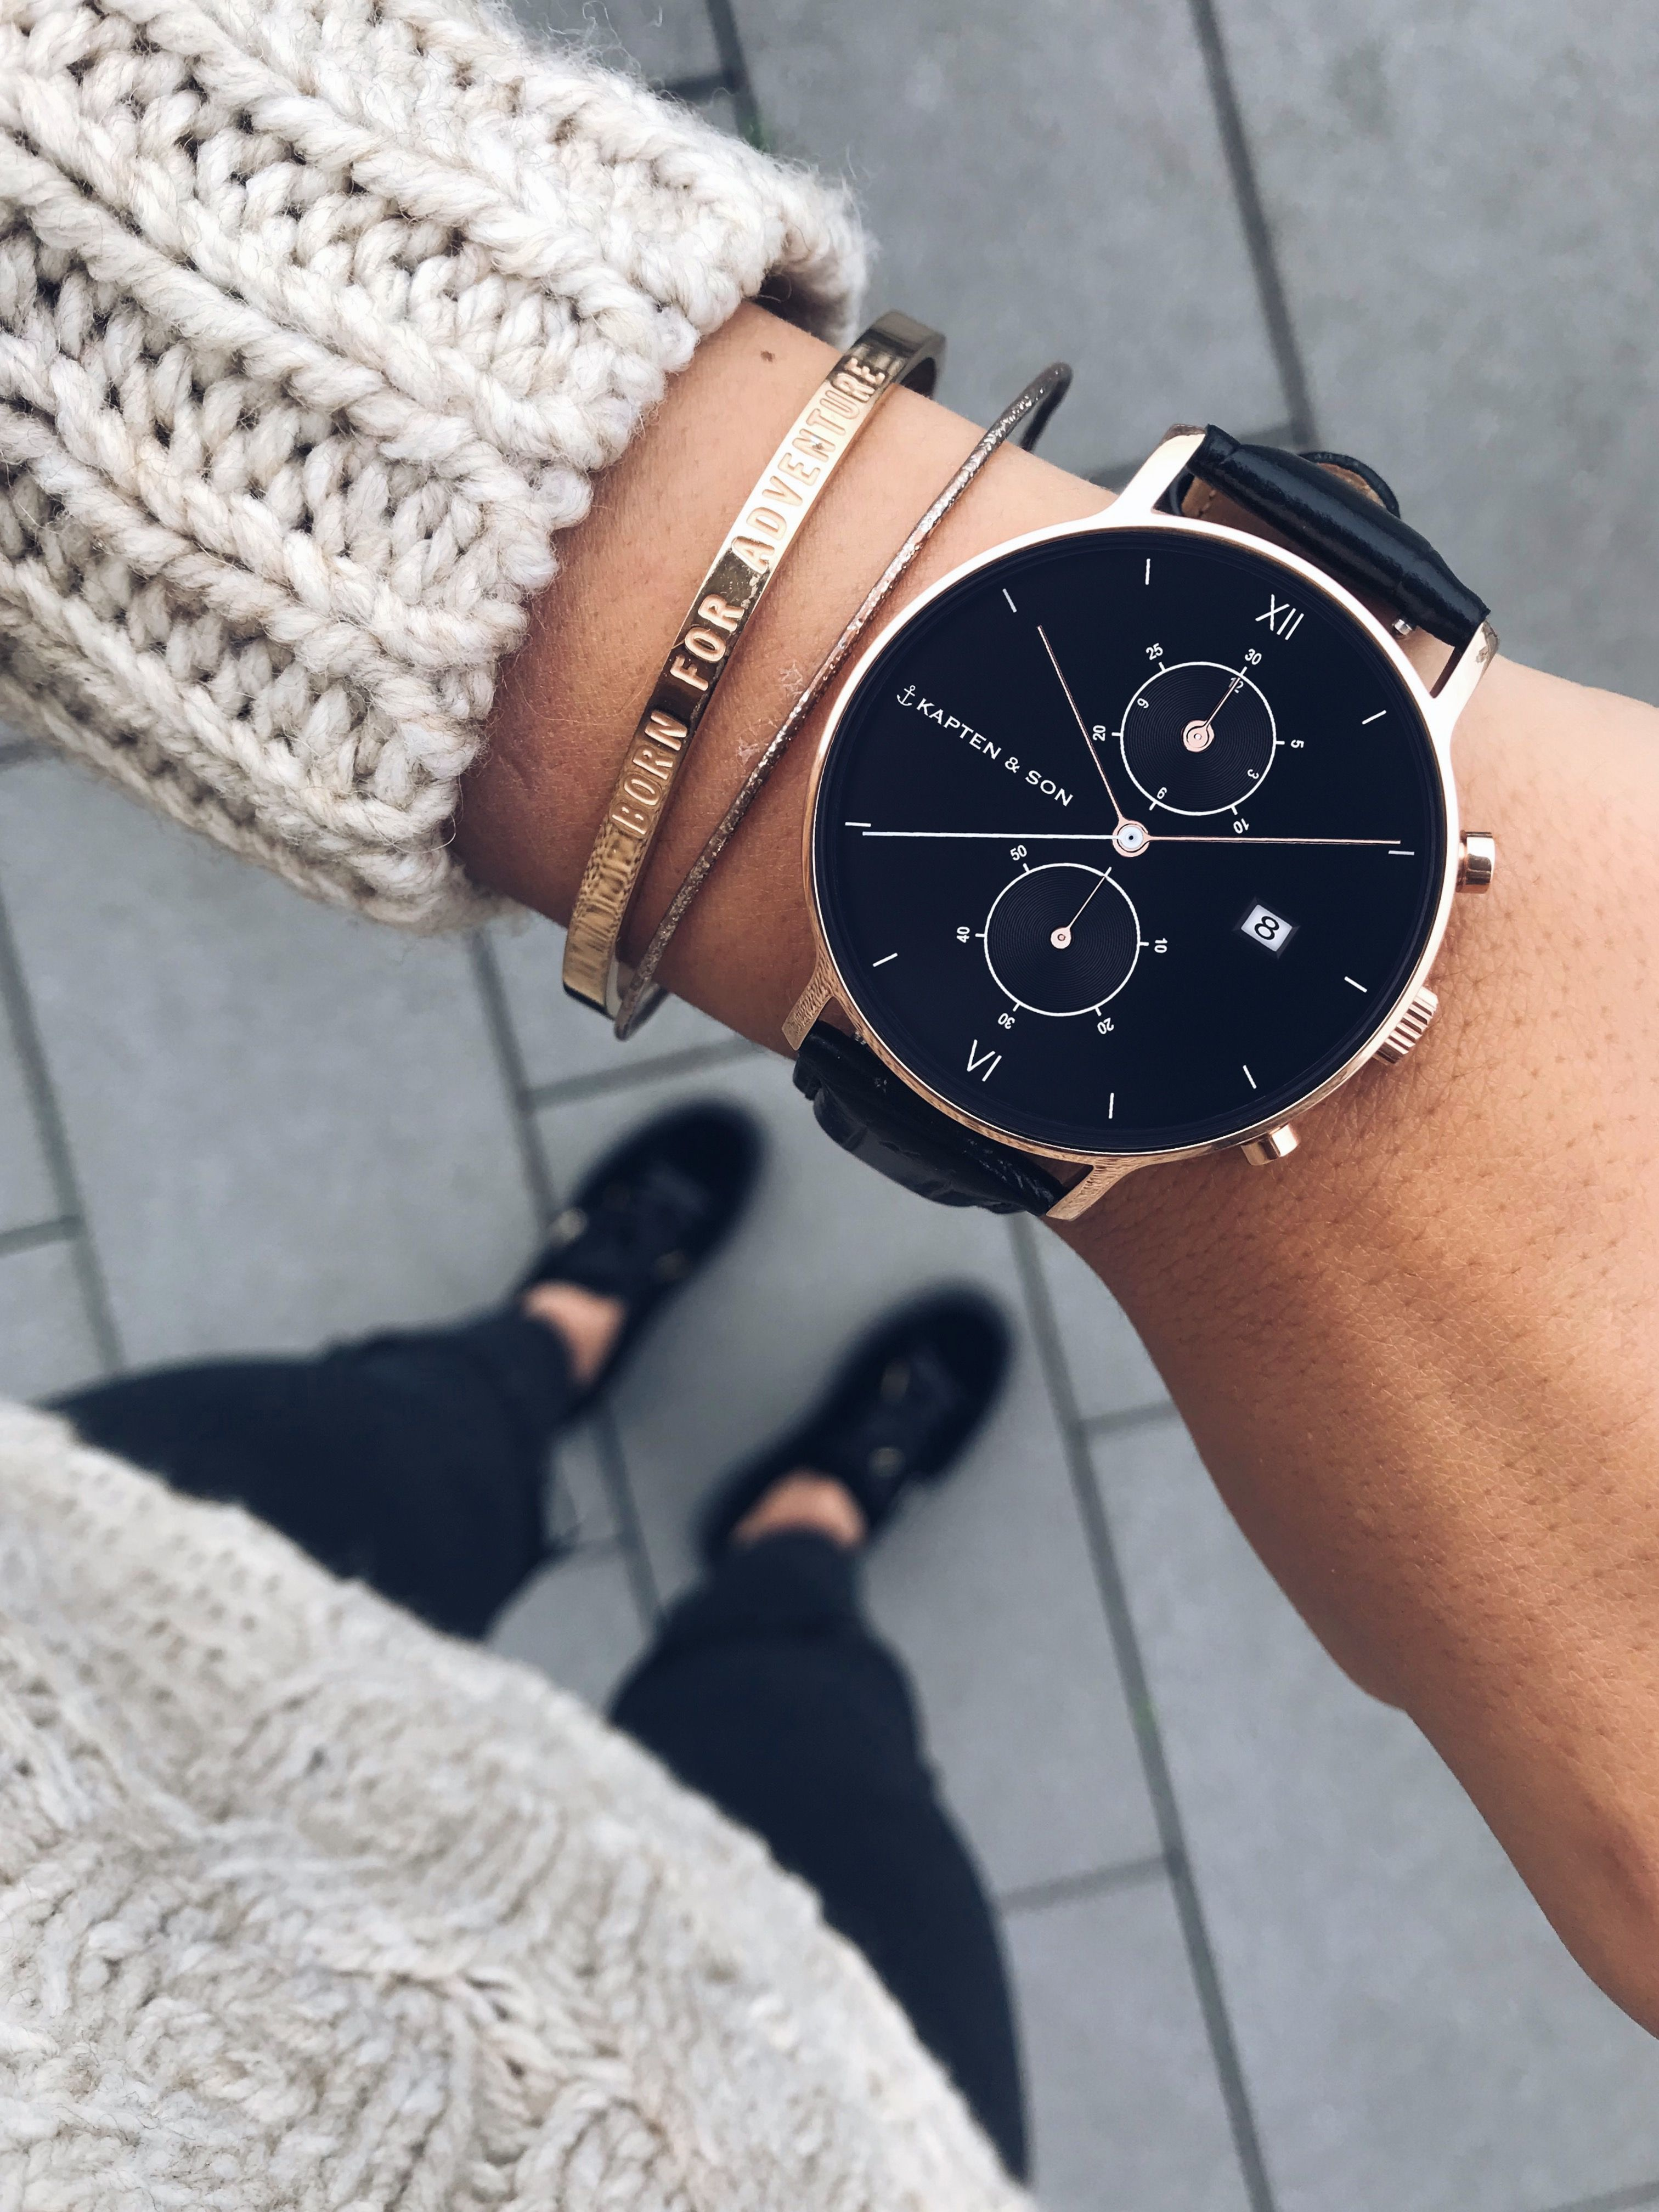 chrono all black croco in 2018 watch house pinterest watches watches for men and jewelry. Black Bedroom Furniture Sets. Home Design Ideas